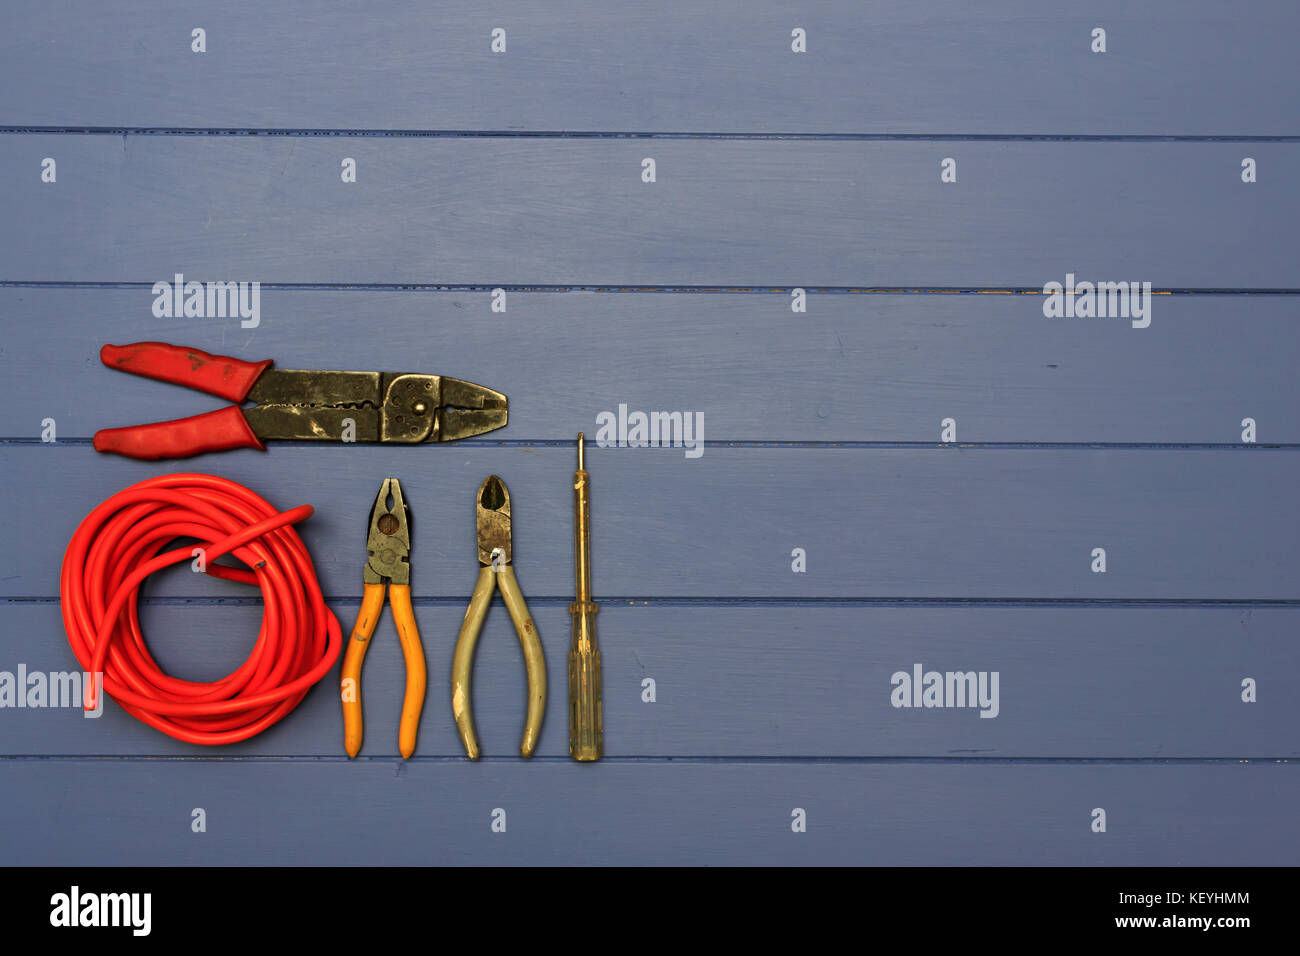 Pair of Pliers, Wire Snips, Small Electrical test screwdriver, pair of wire strippers and roll of red coloured cable - Stock Image